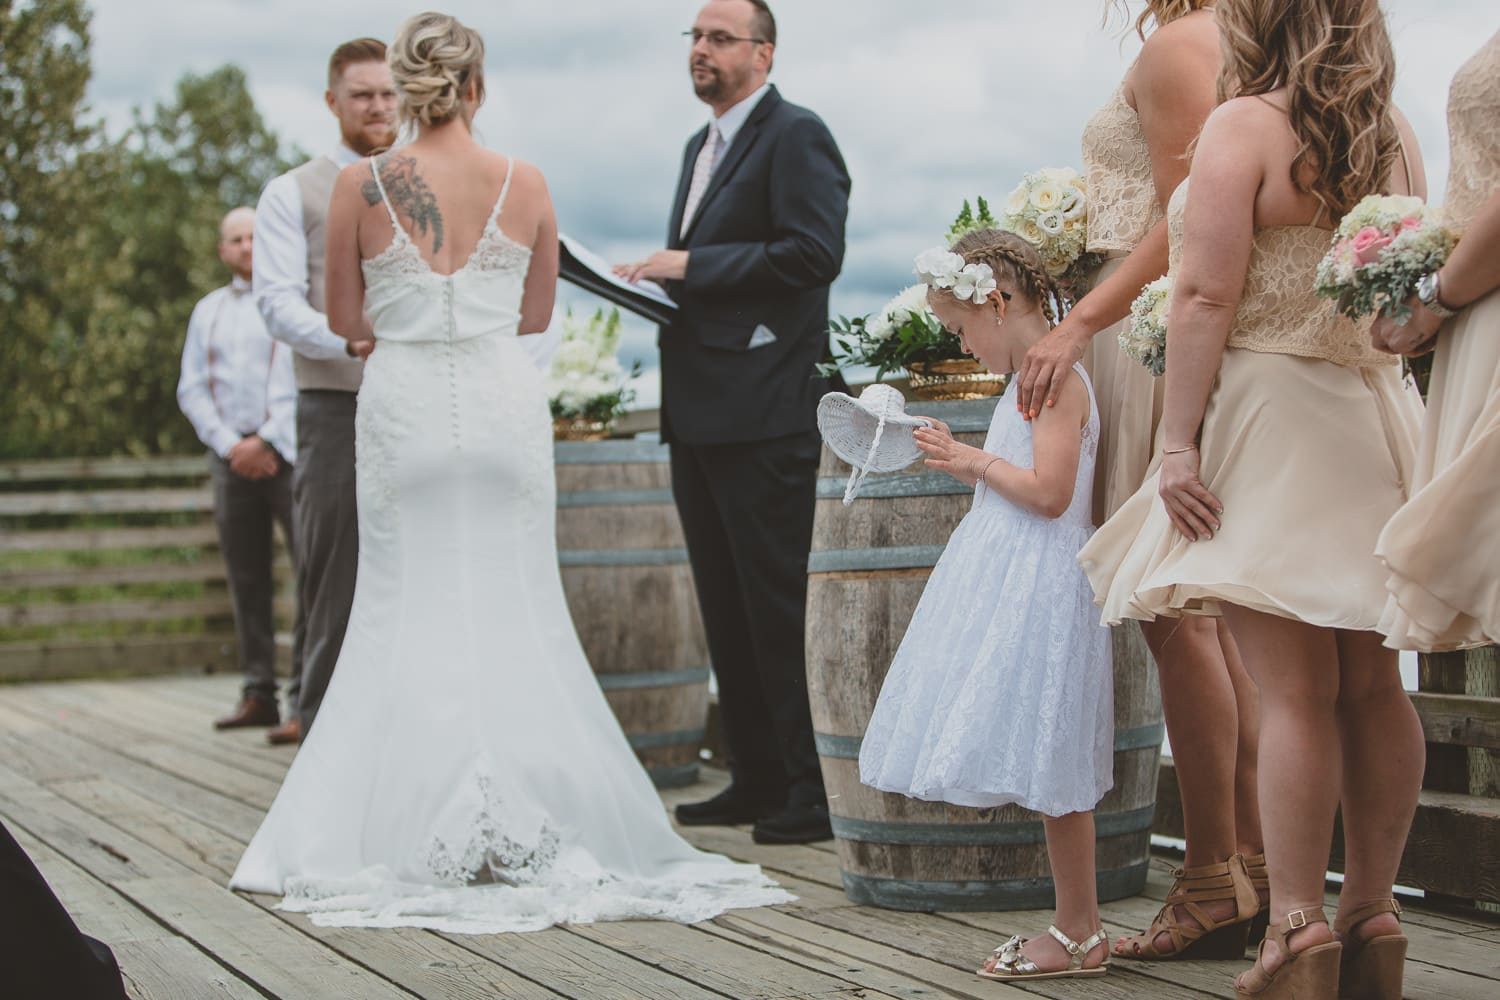 flower girl dumping out basket at wedding ceremony